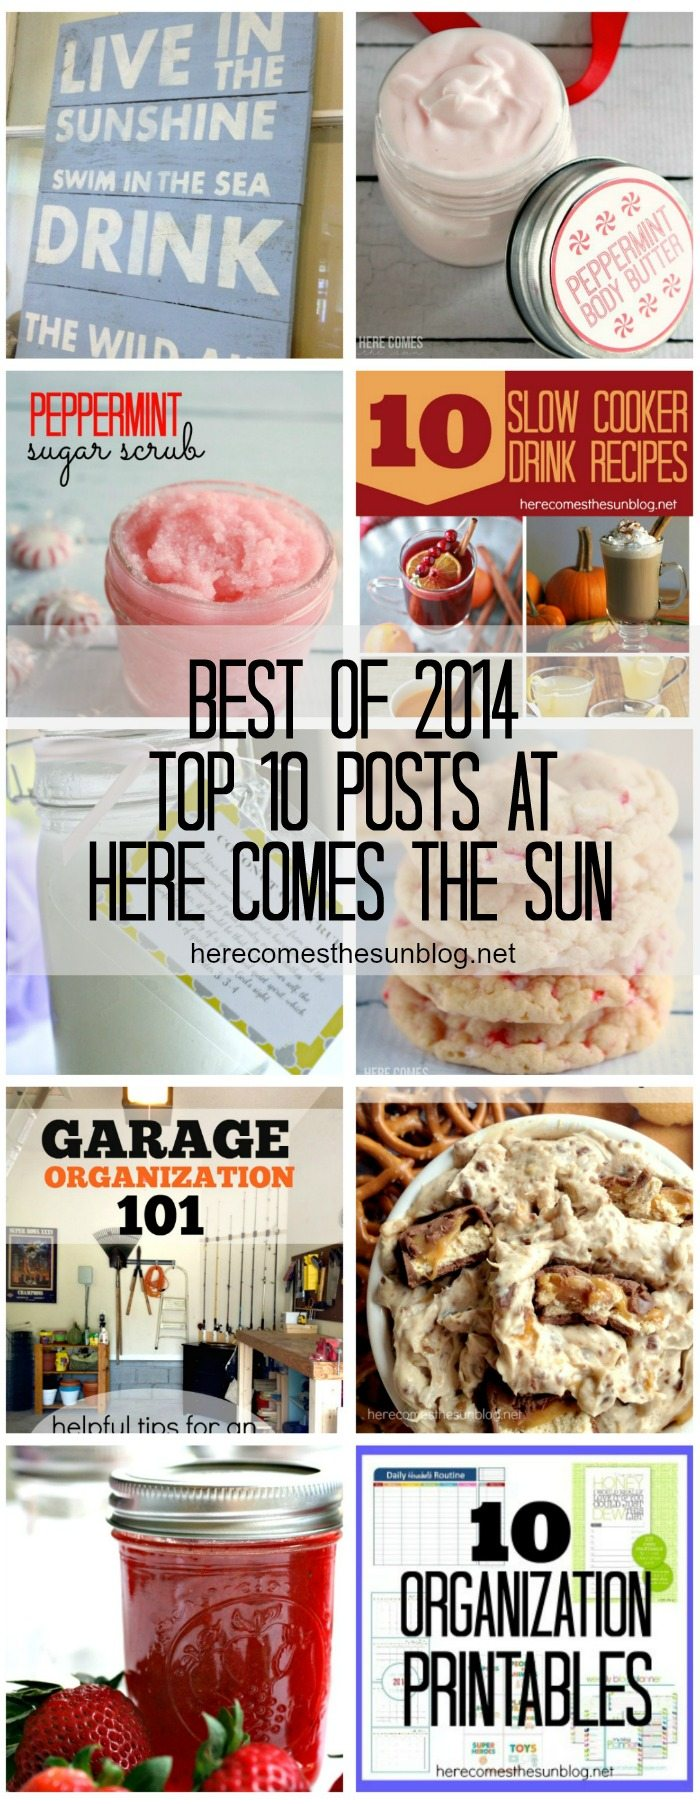 Top 10 most popular posts of 2014 at herecomesthesunblog.net!